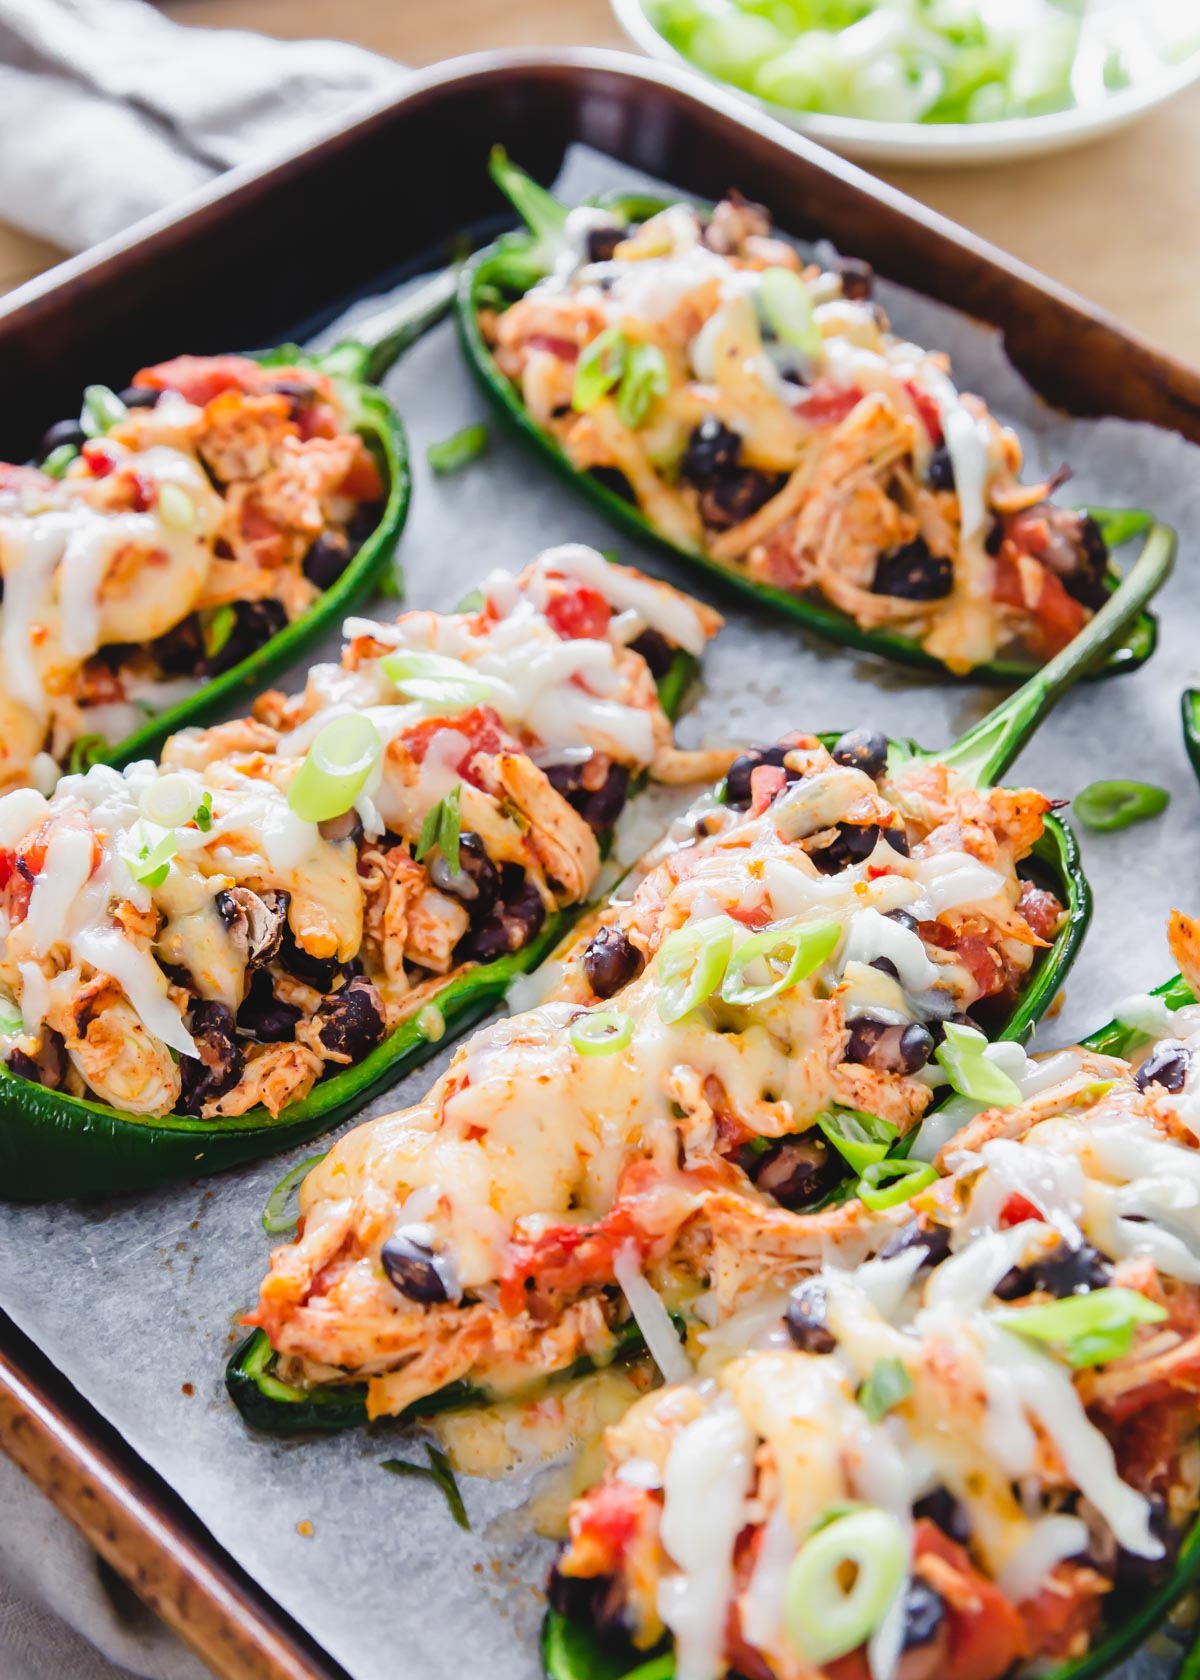 Chicken stuffed poblano peppers are an easy, comforting, low-carb and decadent meal with a Southwestern/Mexican vibe.